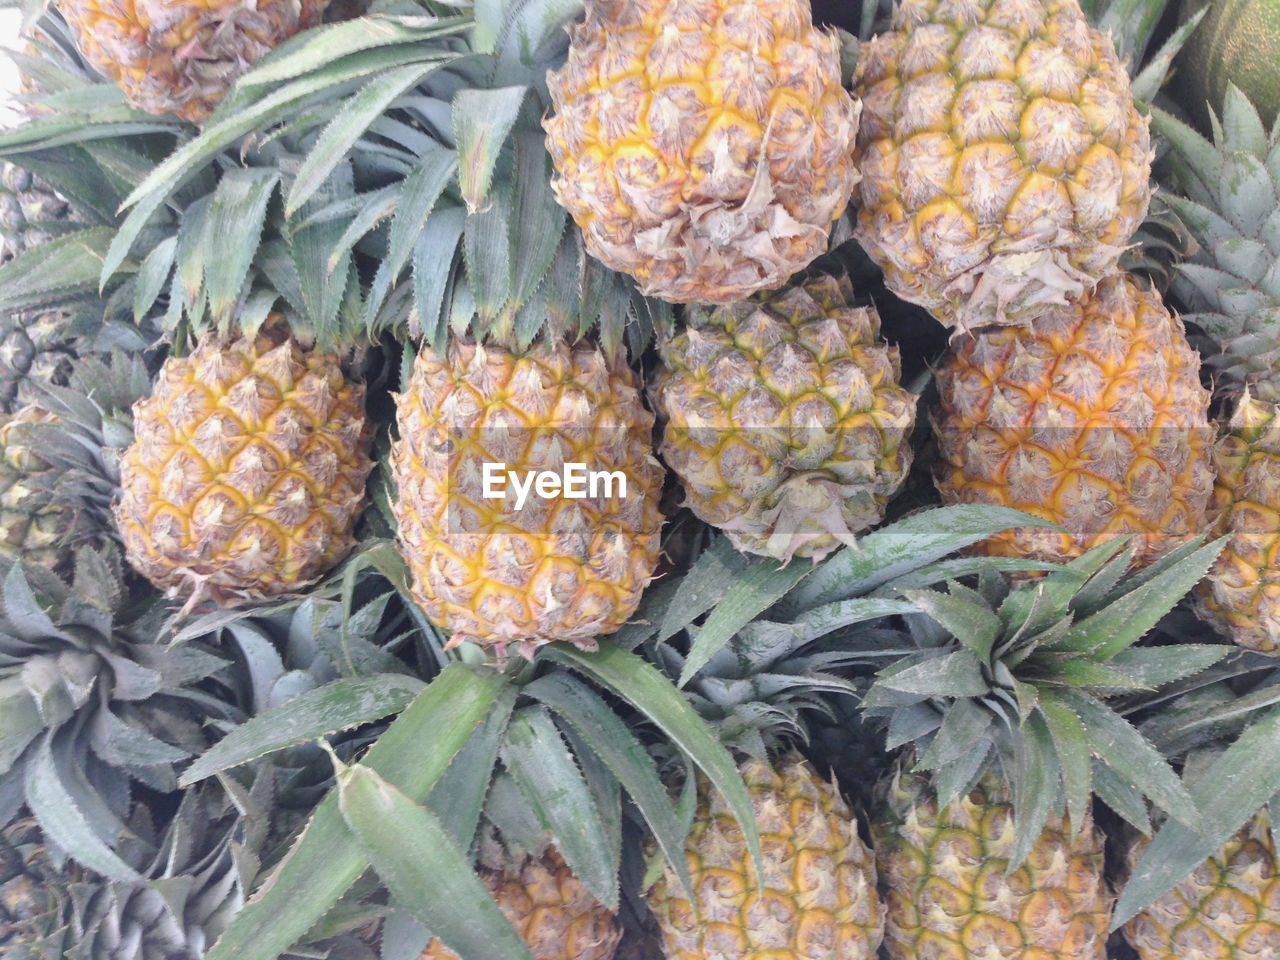 food and drink, pineapple, healthy eating, freshness, food, market, retail, fruit, no people, outdoors, day, large group of objects, close-up